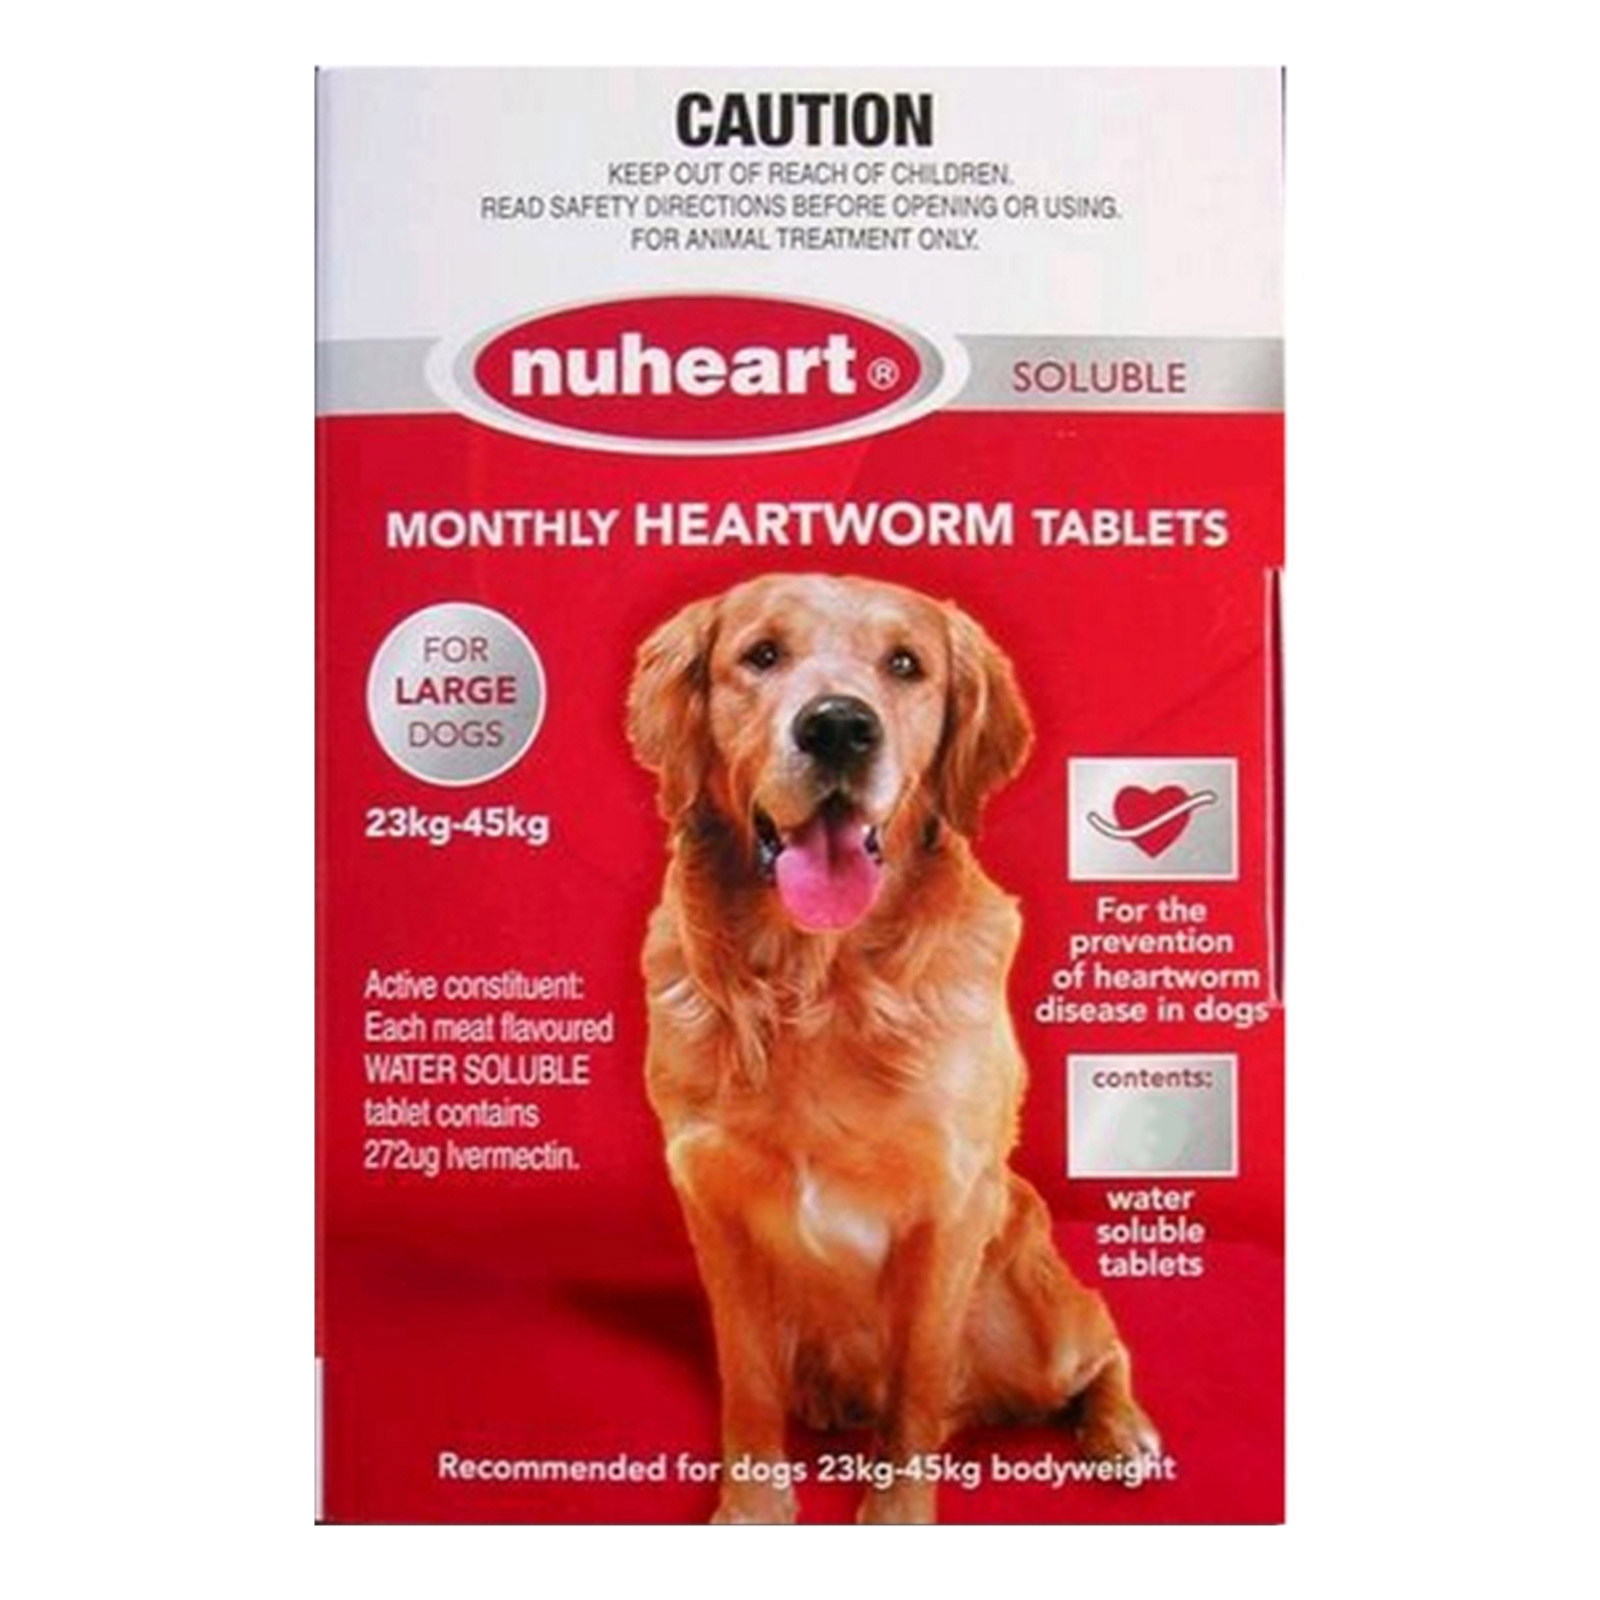 heartgard-plus-generic-nuheart-for-large-dogs-51-100lbs-red